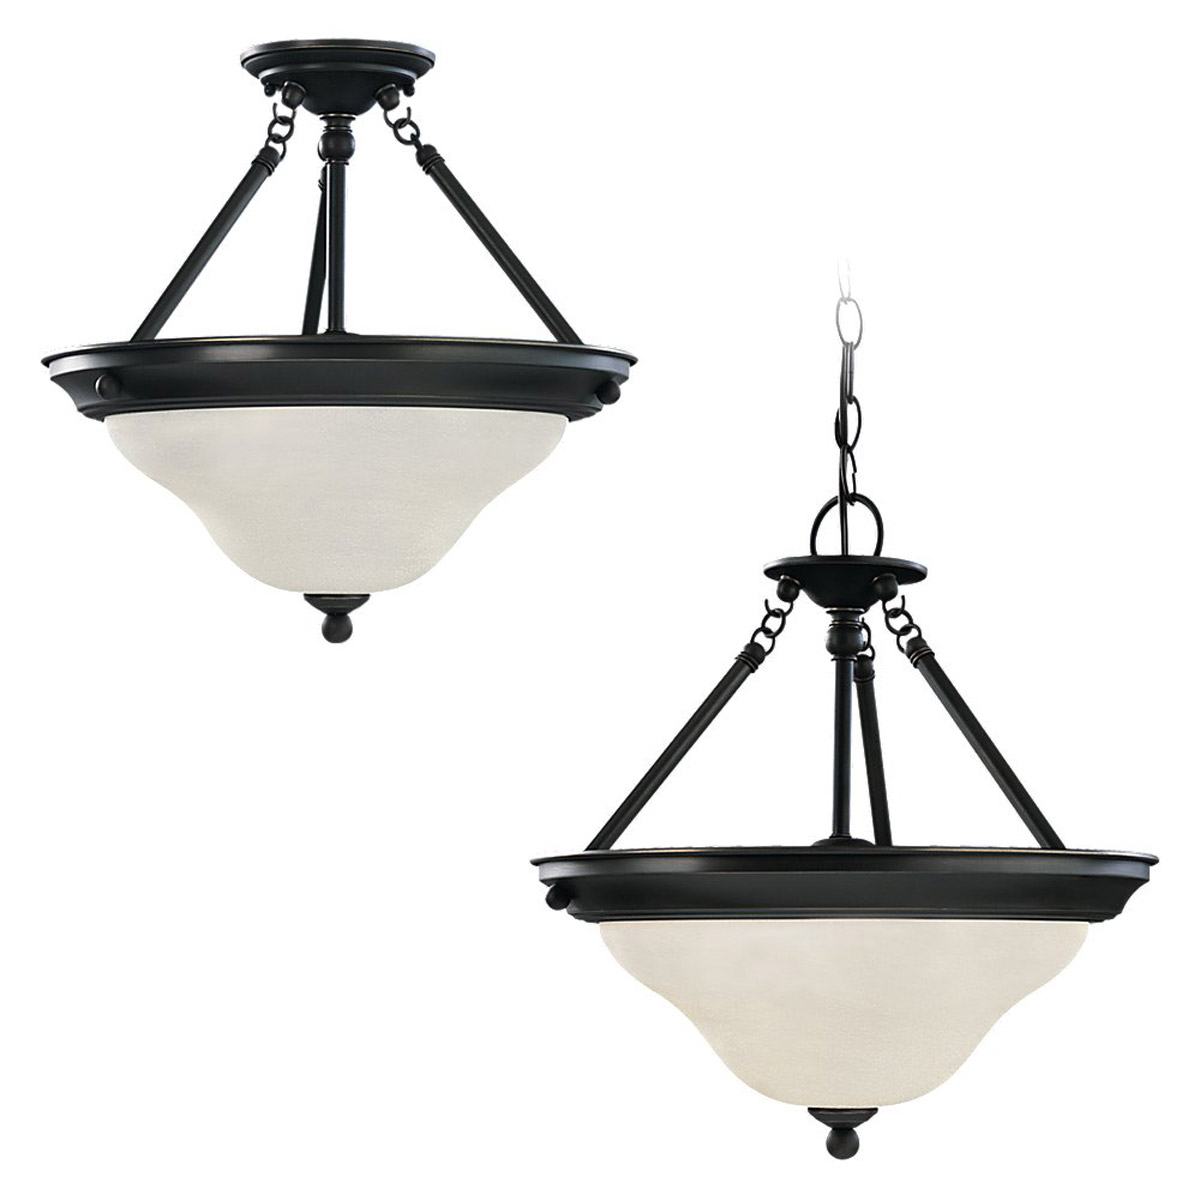 Sea Gull Lighting Sussex 3 Light Pendant Convertible in Heirloom Bronze 69562BLE-782